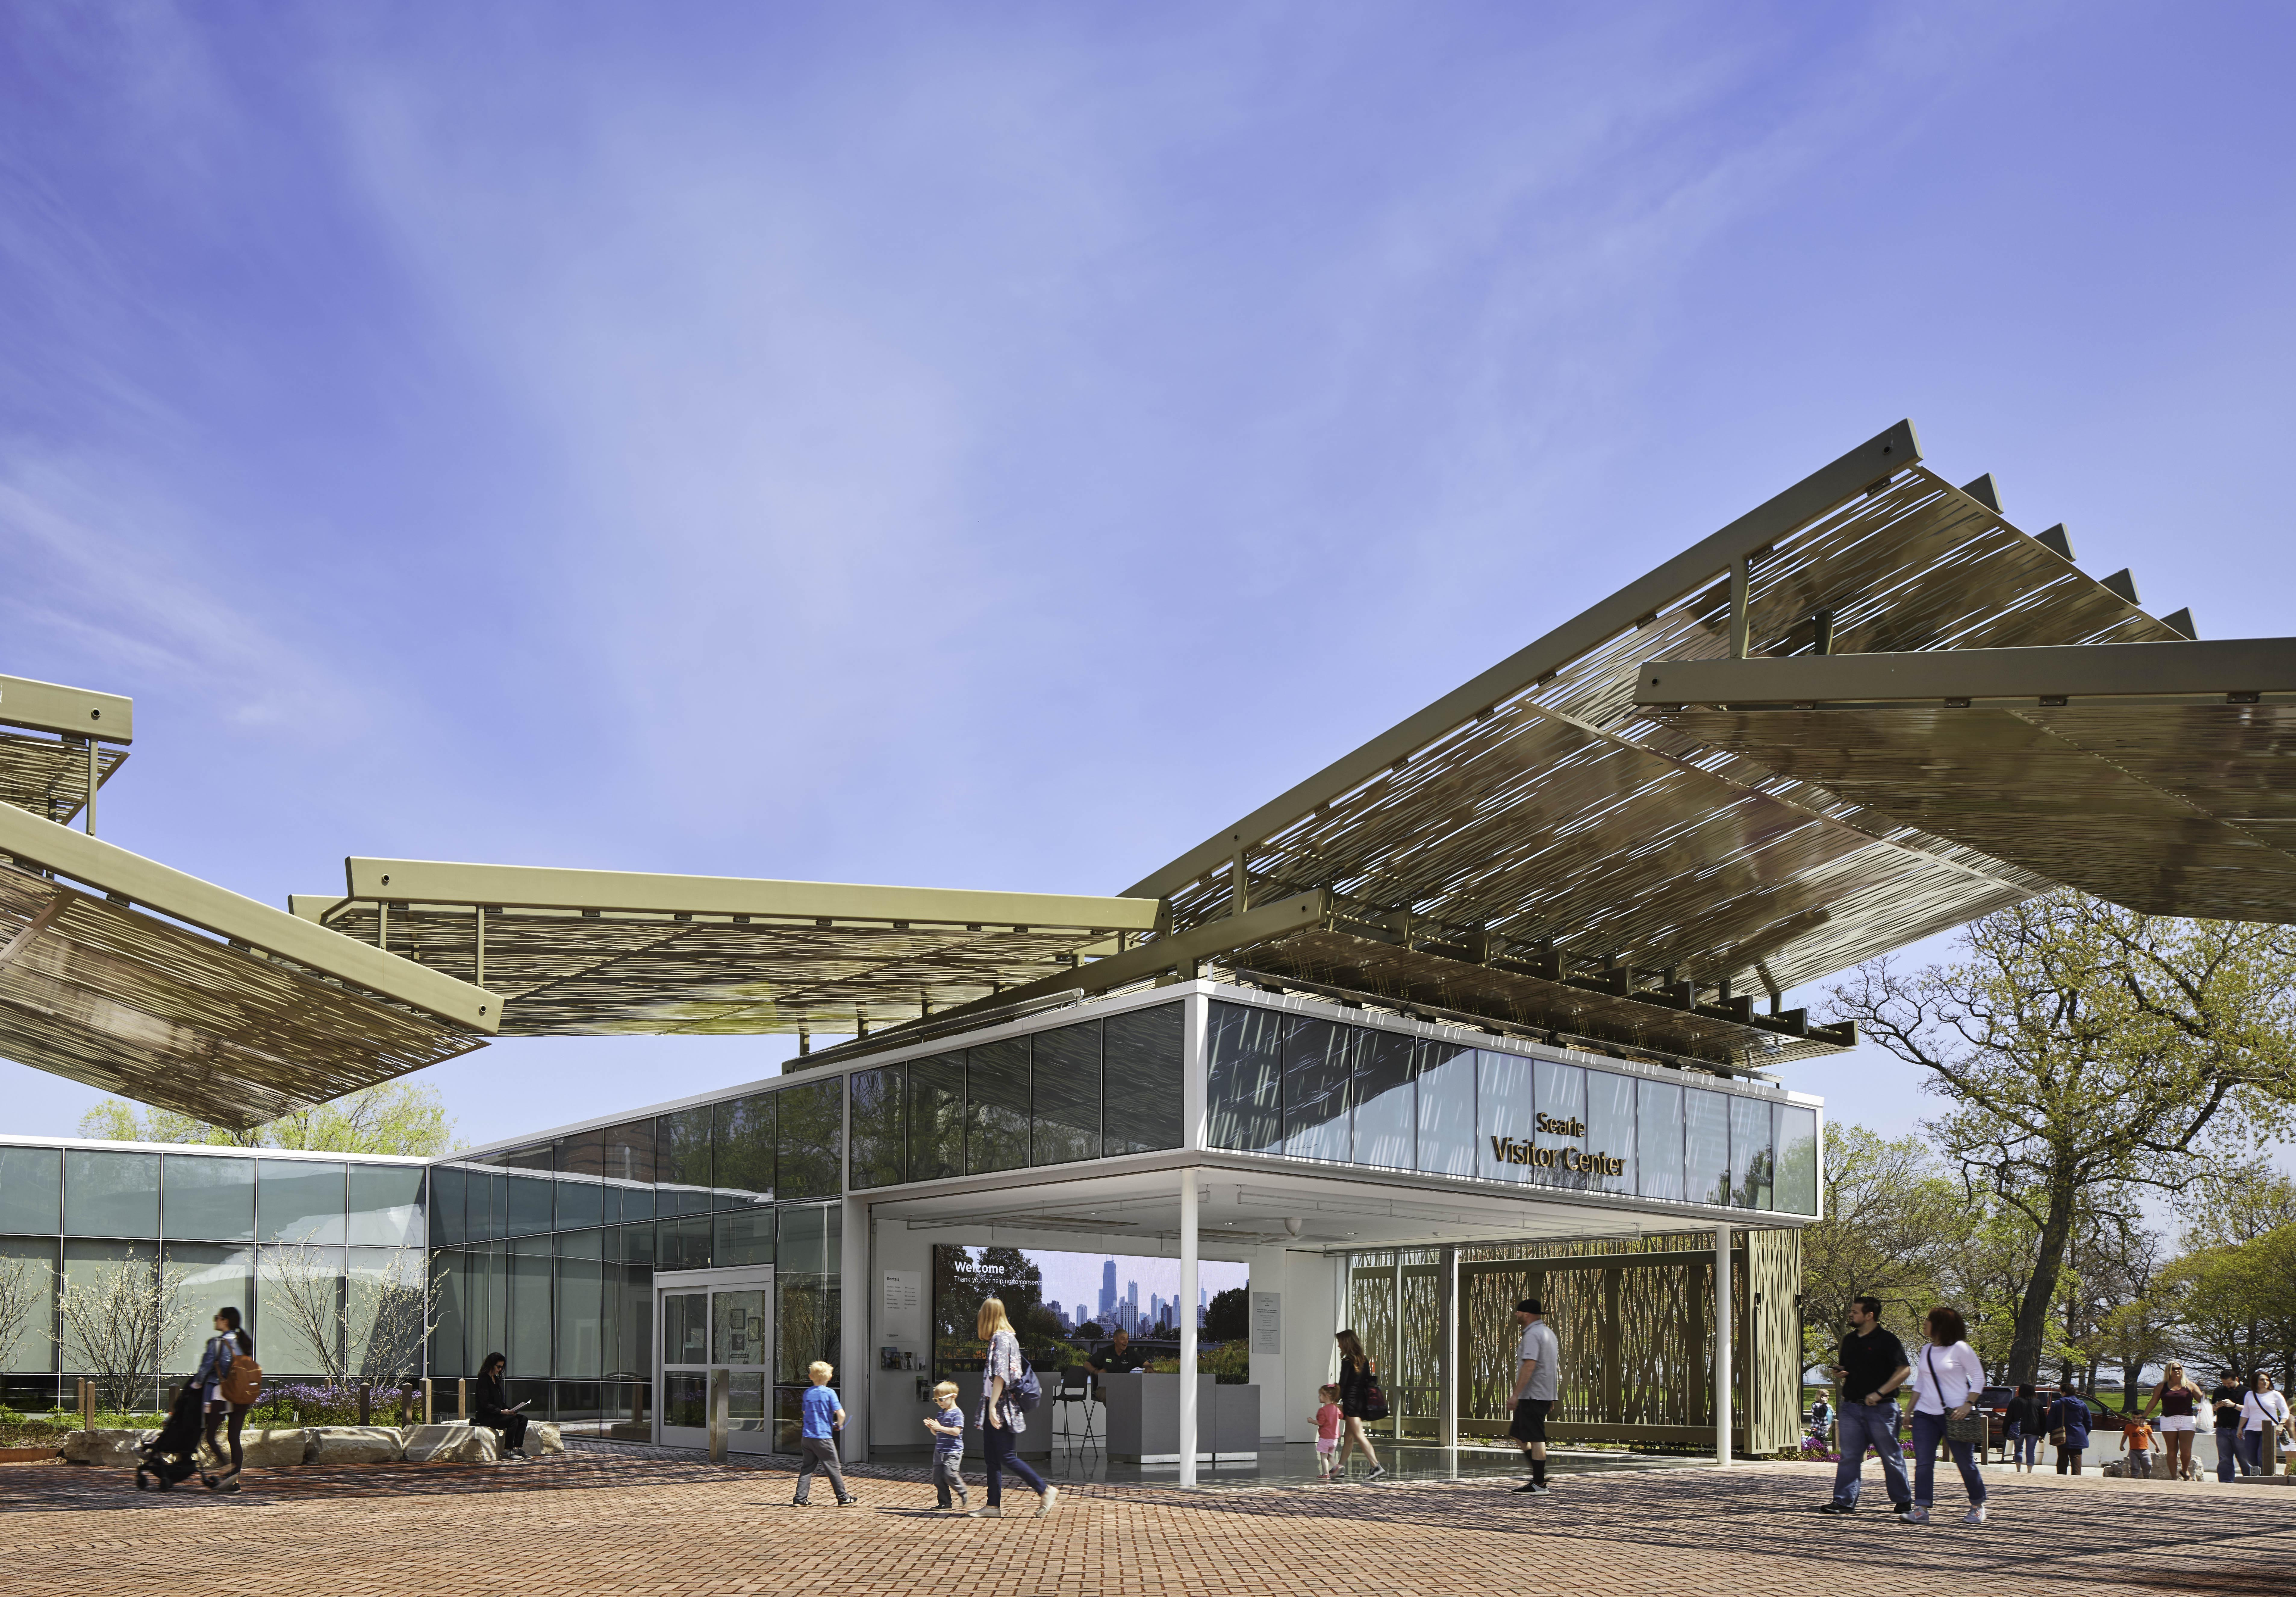 New visitor center with cantilever canopy and disappearing glass walls